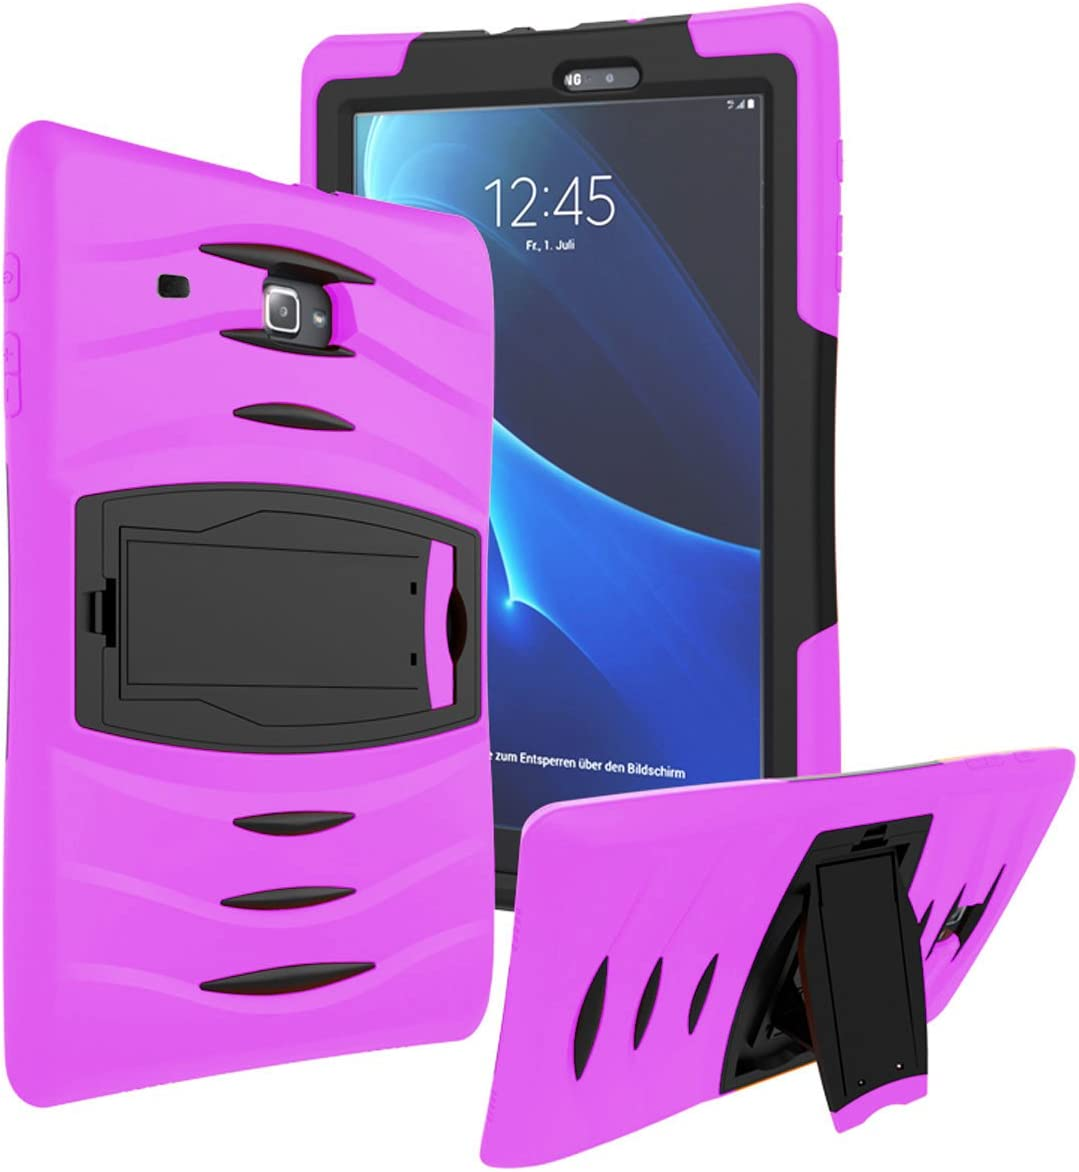 Galaxy Tab A 7.0 SM-T280 2016 Case by KIQ Full-Body Shock Proof Hybrid Heavy Duty Armor Protective Case for Samsung Tab A 7-inch [T280 & T285] (Armor Hot Pink)